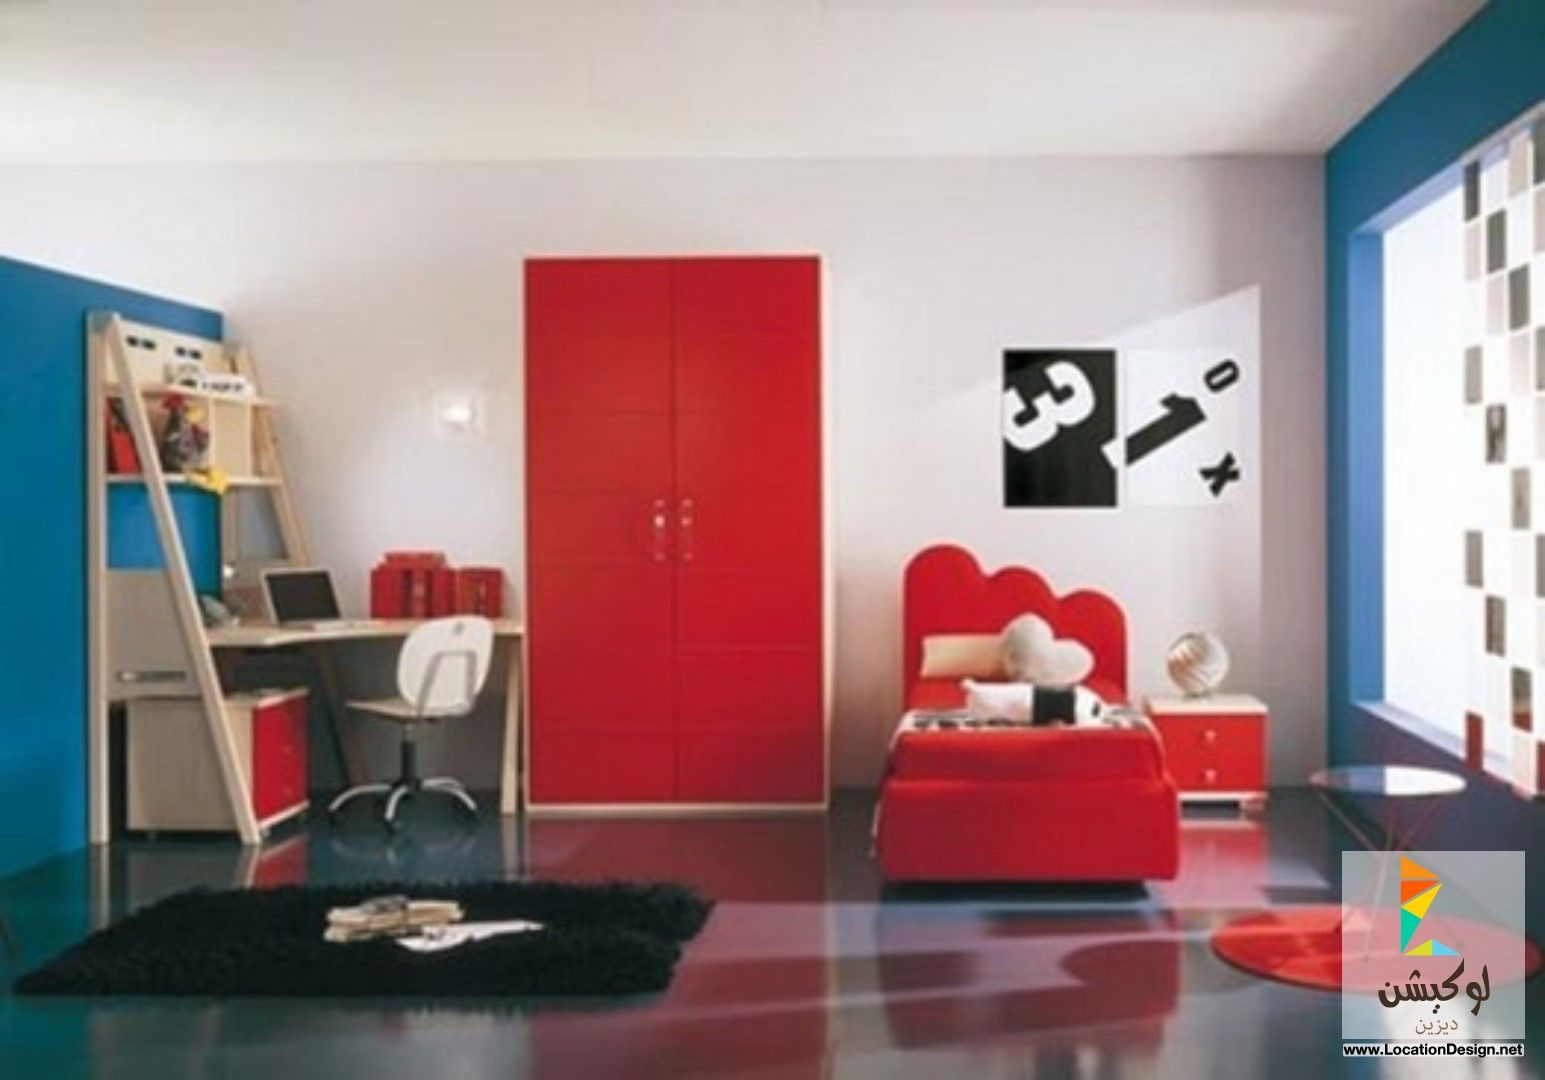 explore red kids rooms kids rooms decor and more - Red Kids Room Decor